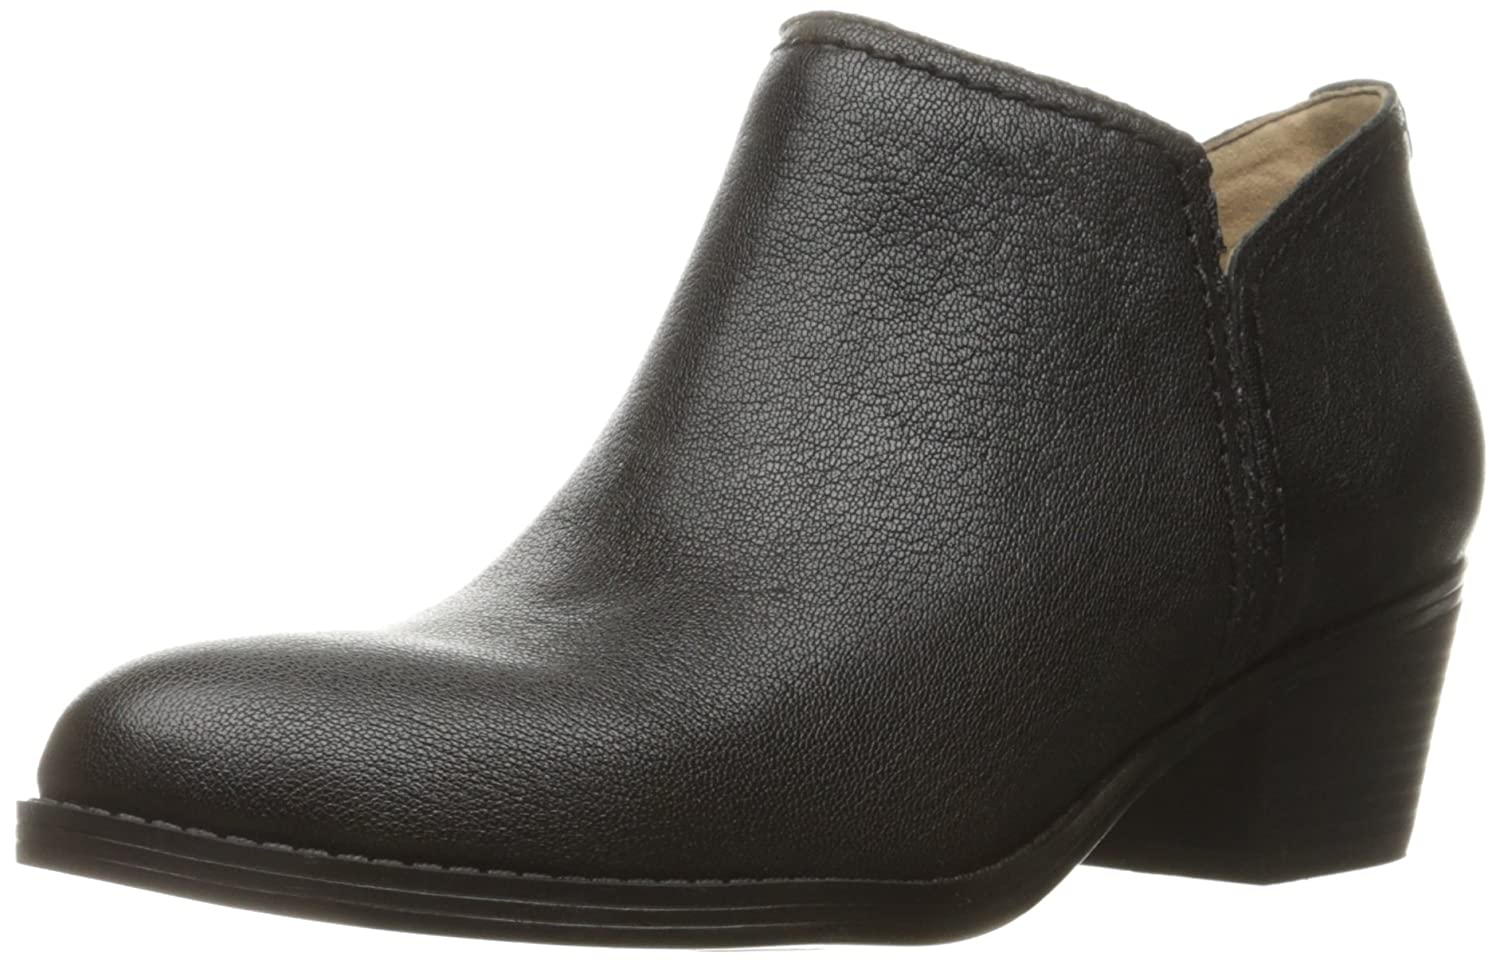 Naturalizer Women's Zarie Boot B019XI1RME 4 B(M) US|Black